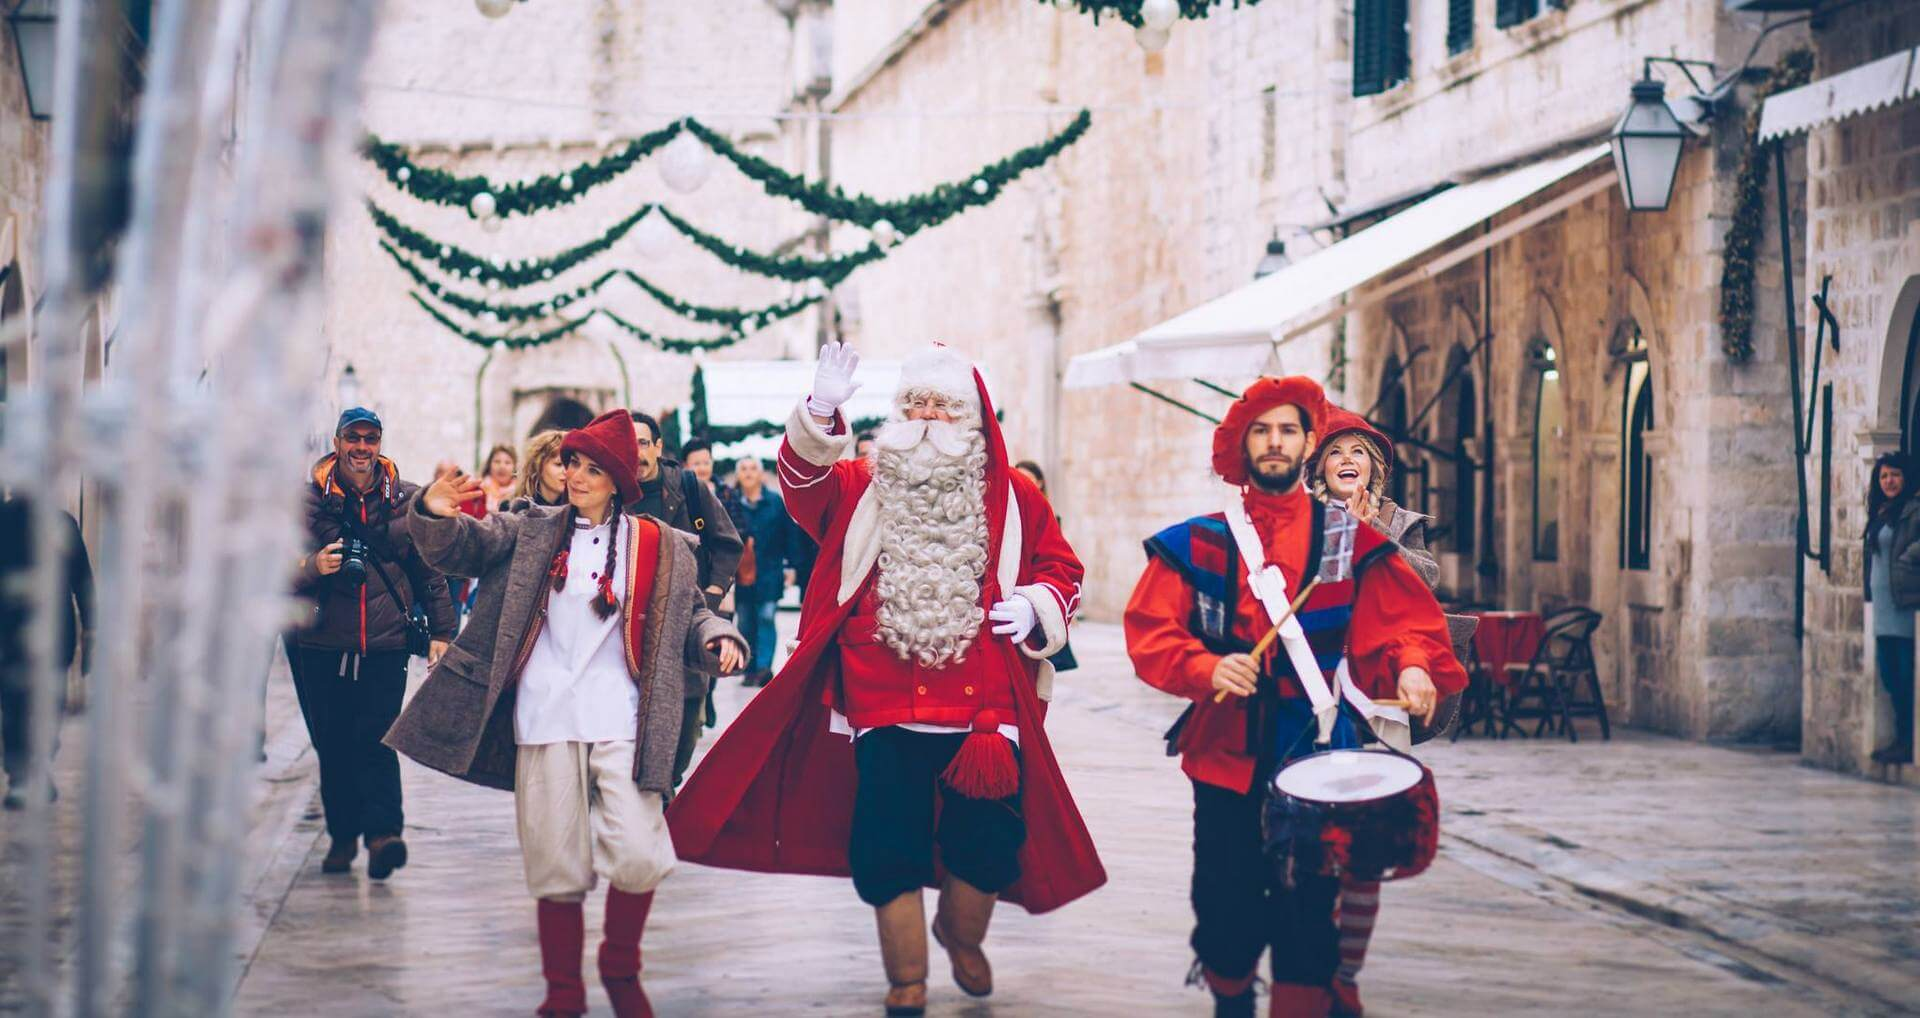 Dubrovnik Winter Festival Winter Events In Dubrovnik Advent In Dubrovnik Valentine's day Christmas